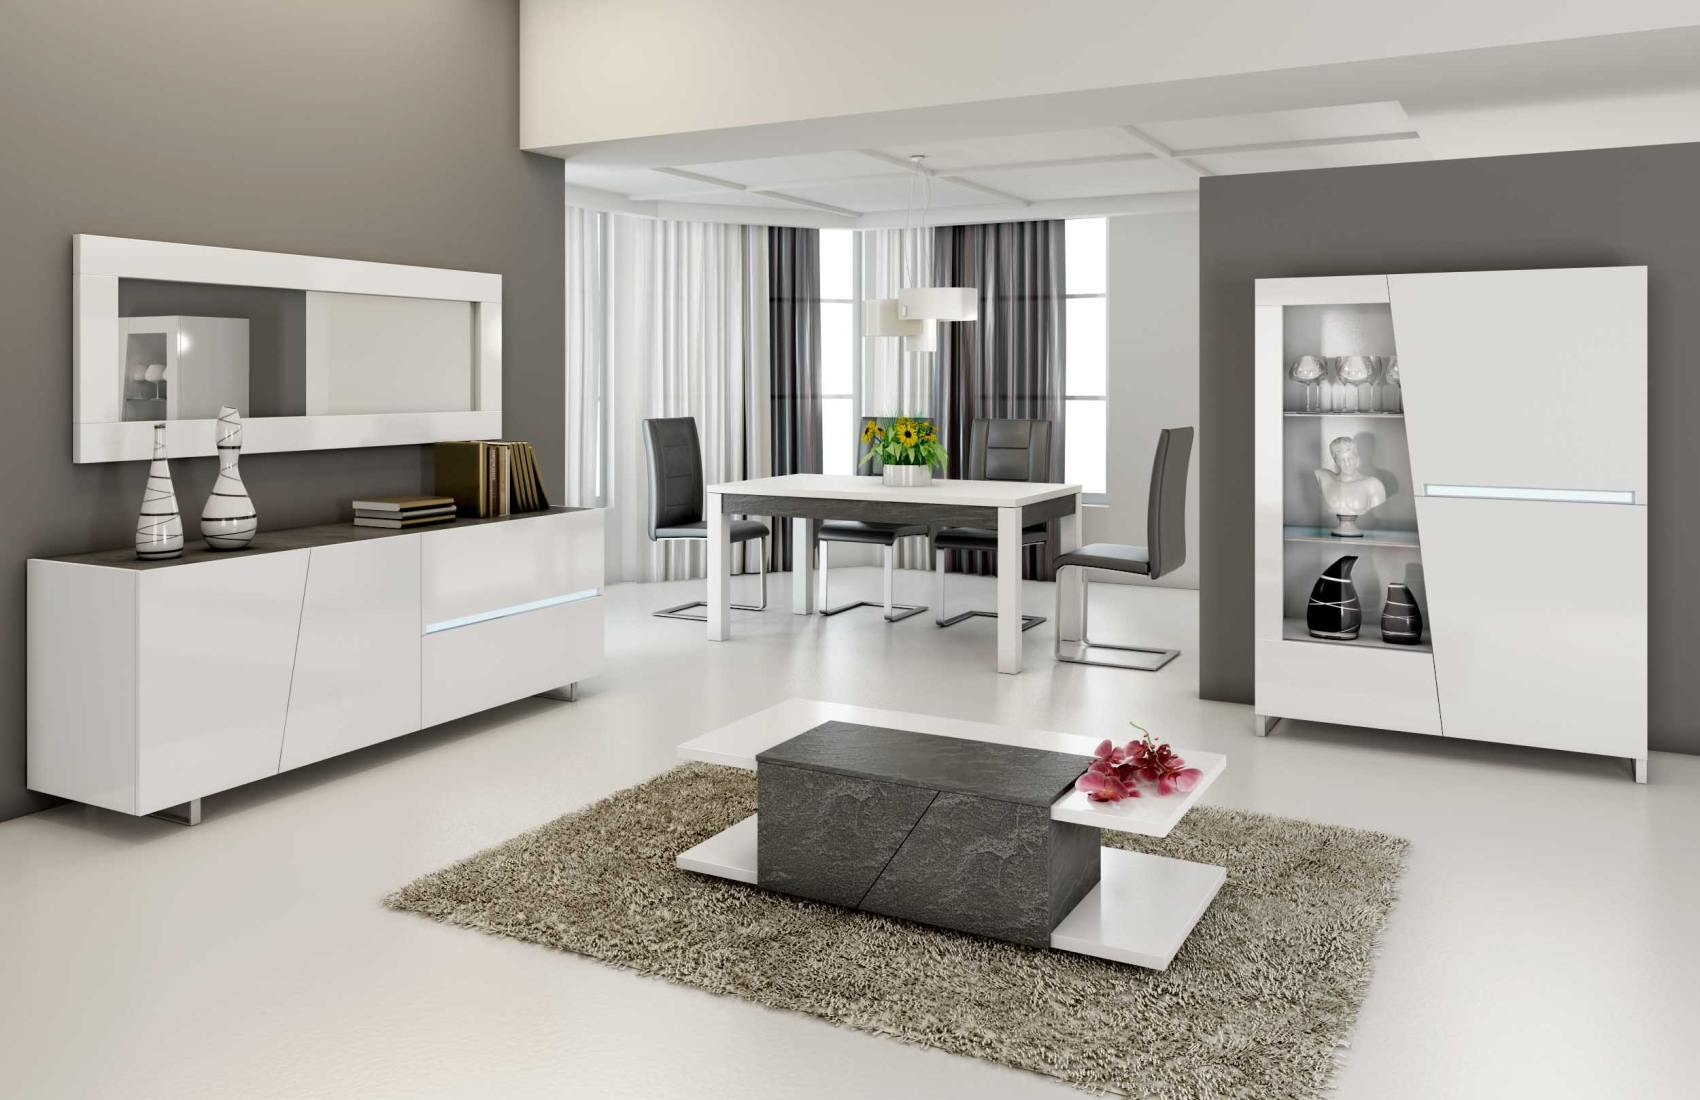 amenagement cuisine salon salle a manger cuisine. Black Bedroom Furniture Sets. Home Design Ideas